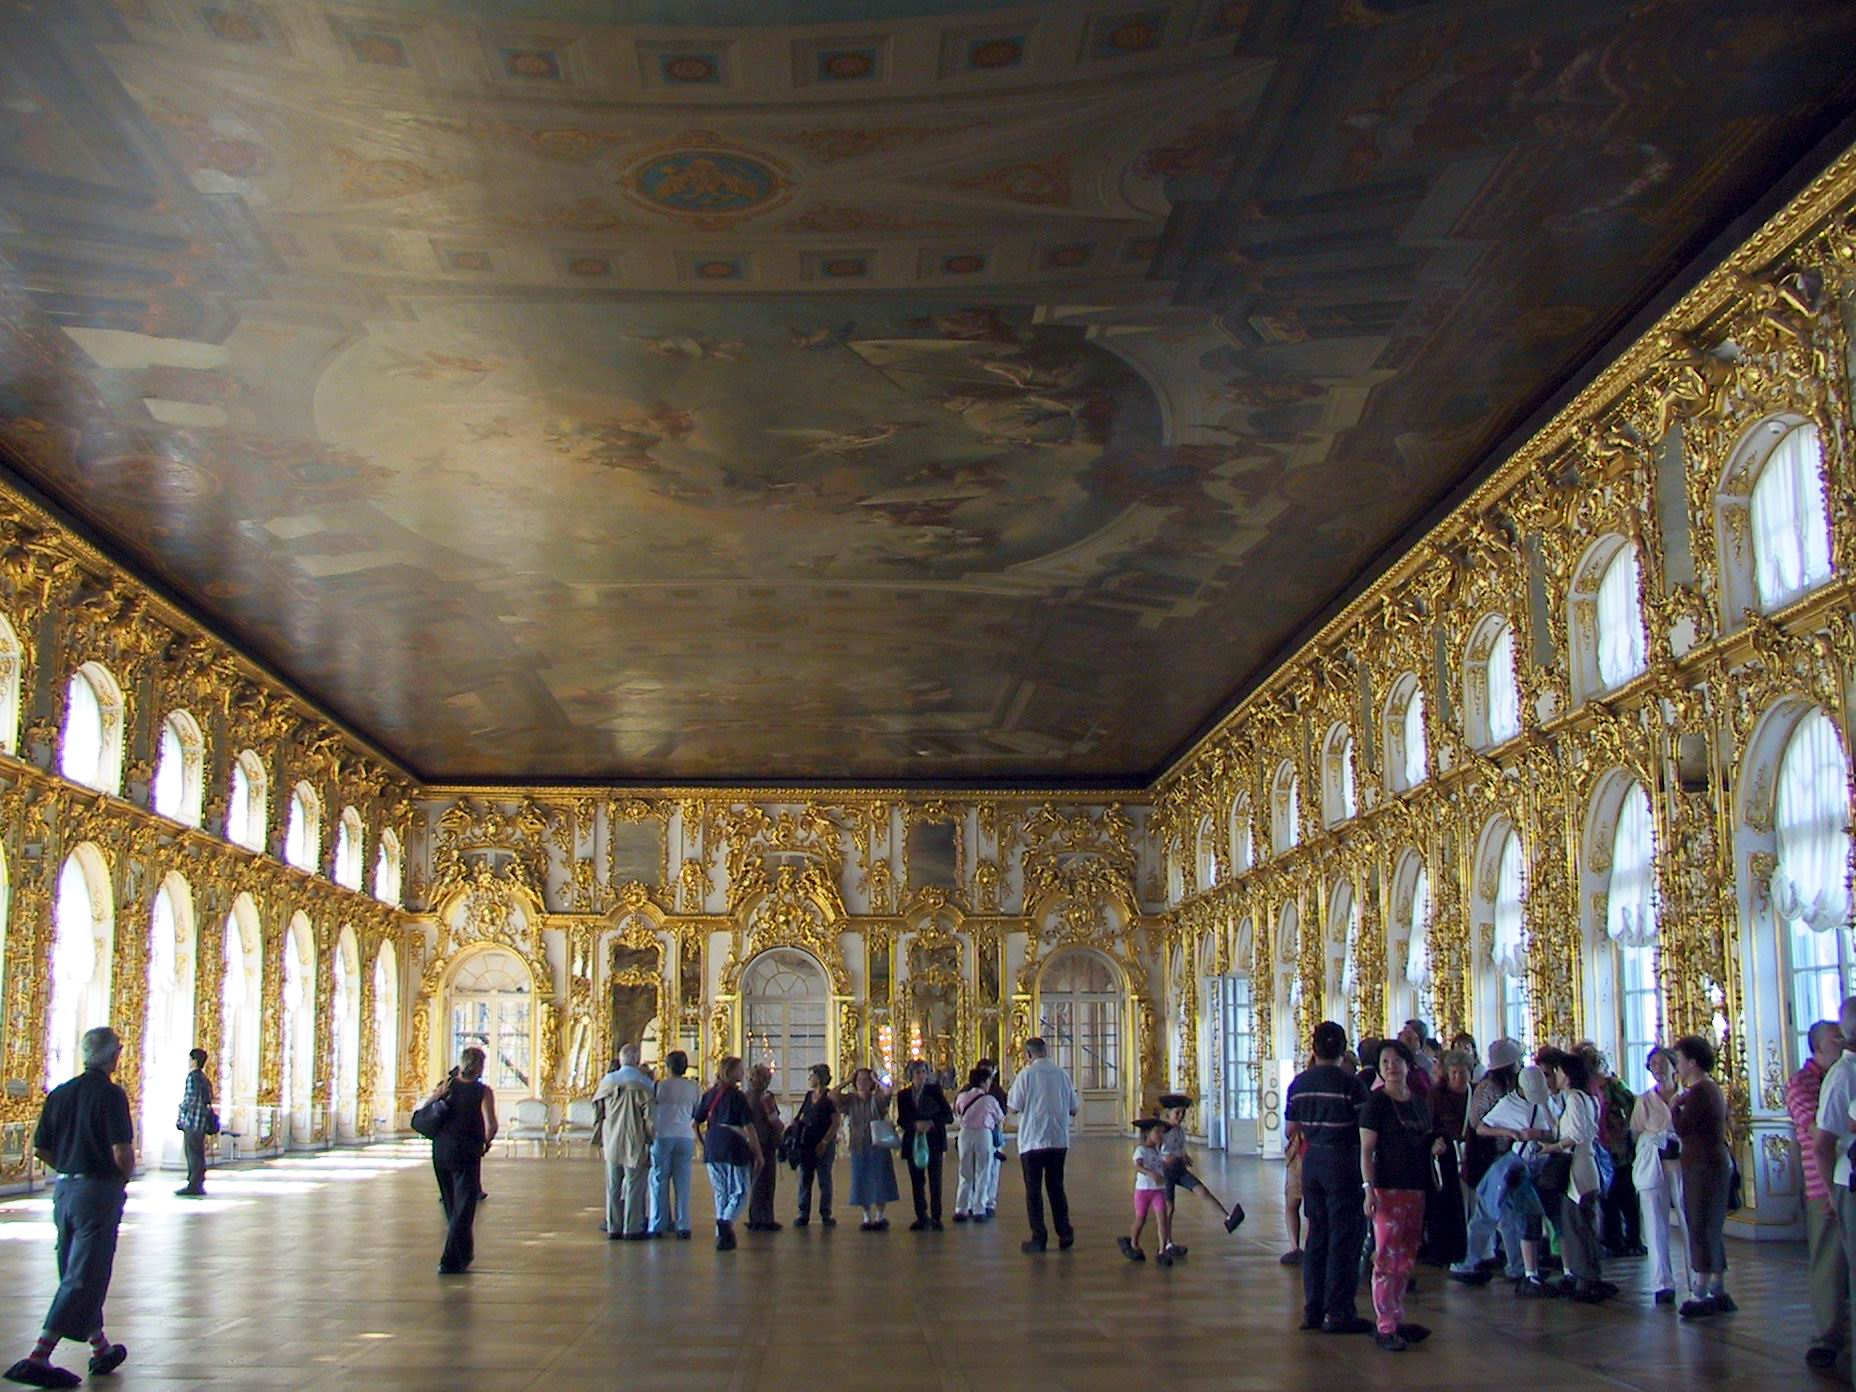 b503 ball room of catherine palace st petersburg